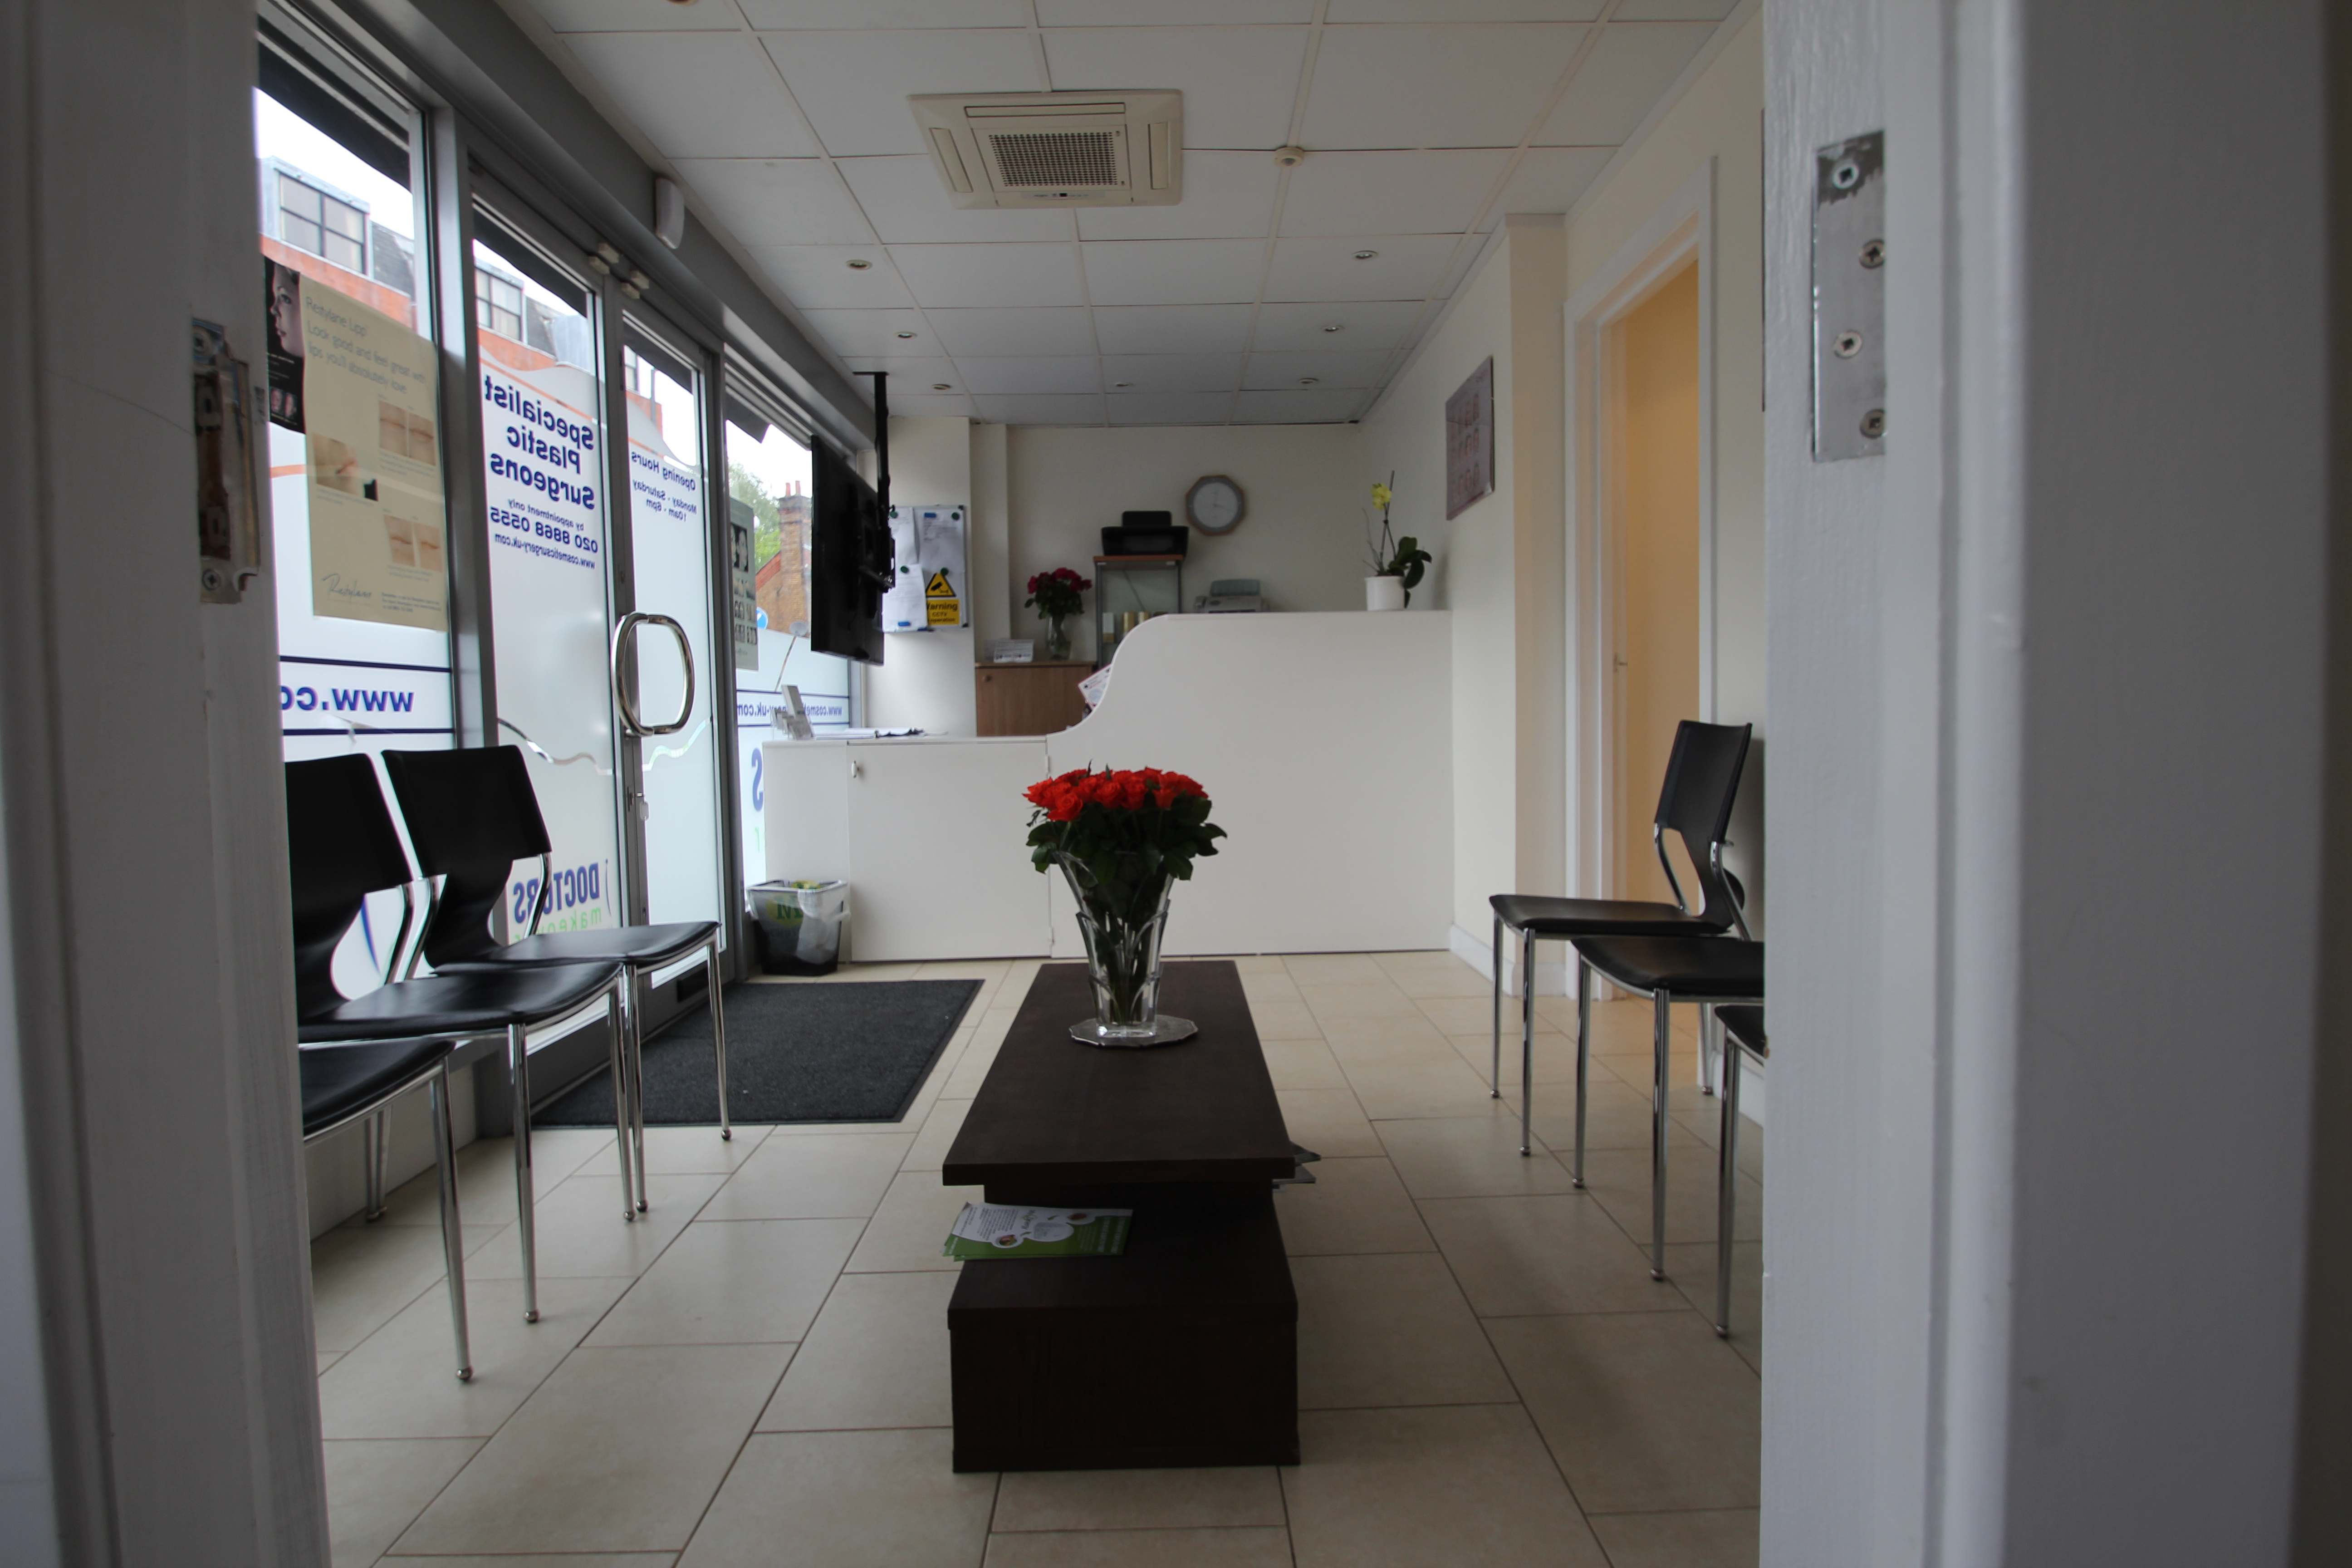 Doctors Makeover, Cosmetic Surgery UK